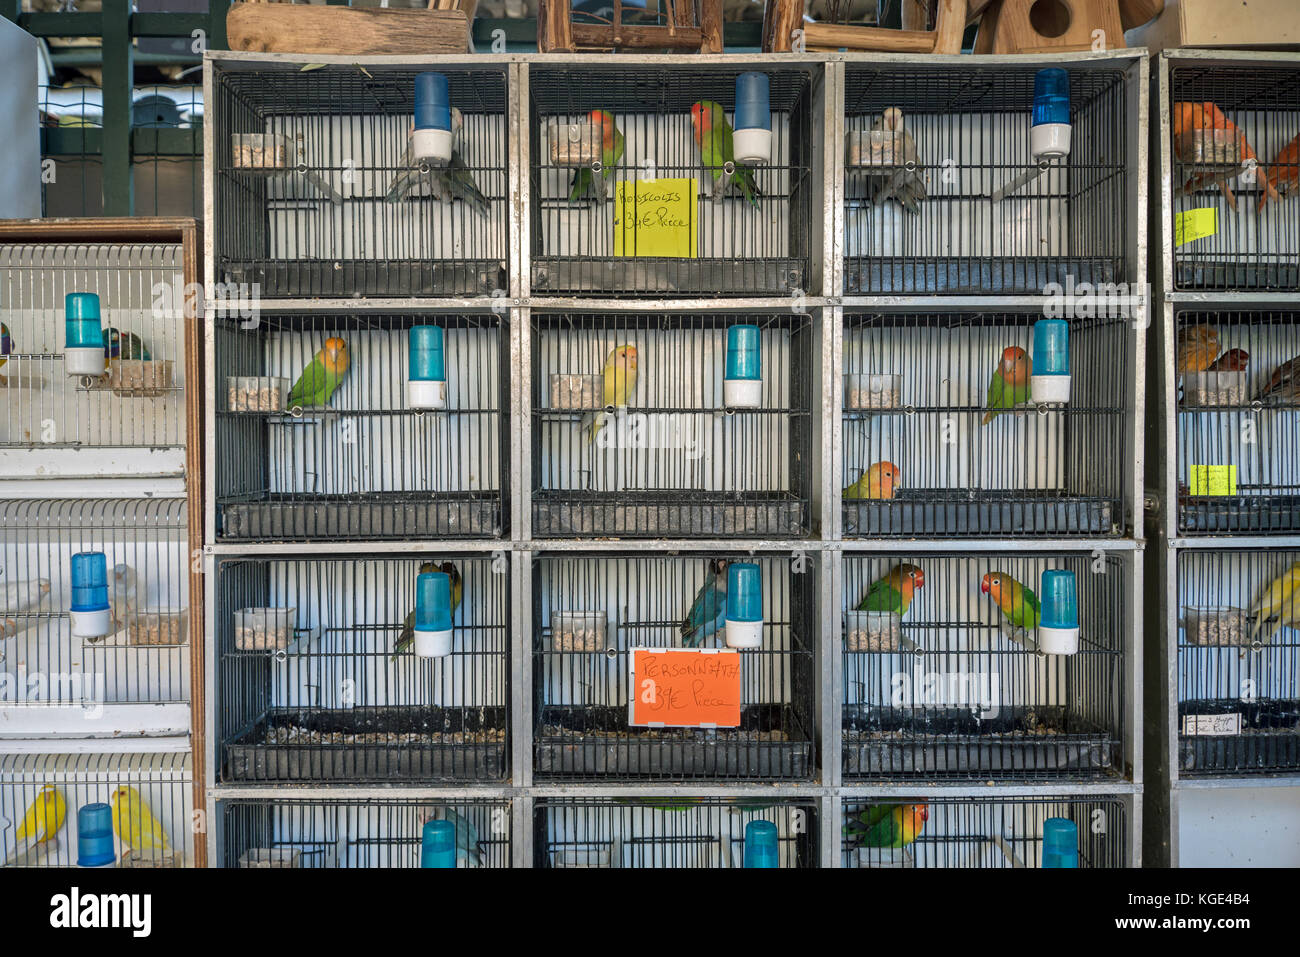 Birds for sale at the Marché aux Oiseaux: the Sunday morning bird market on the Ile St Louis in Paris, France. - Stock Image